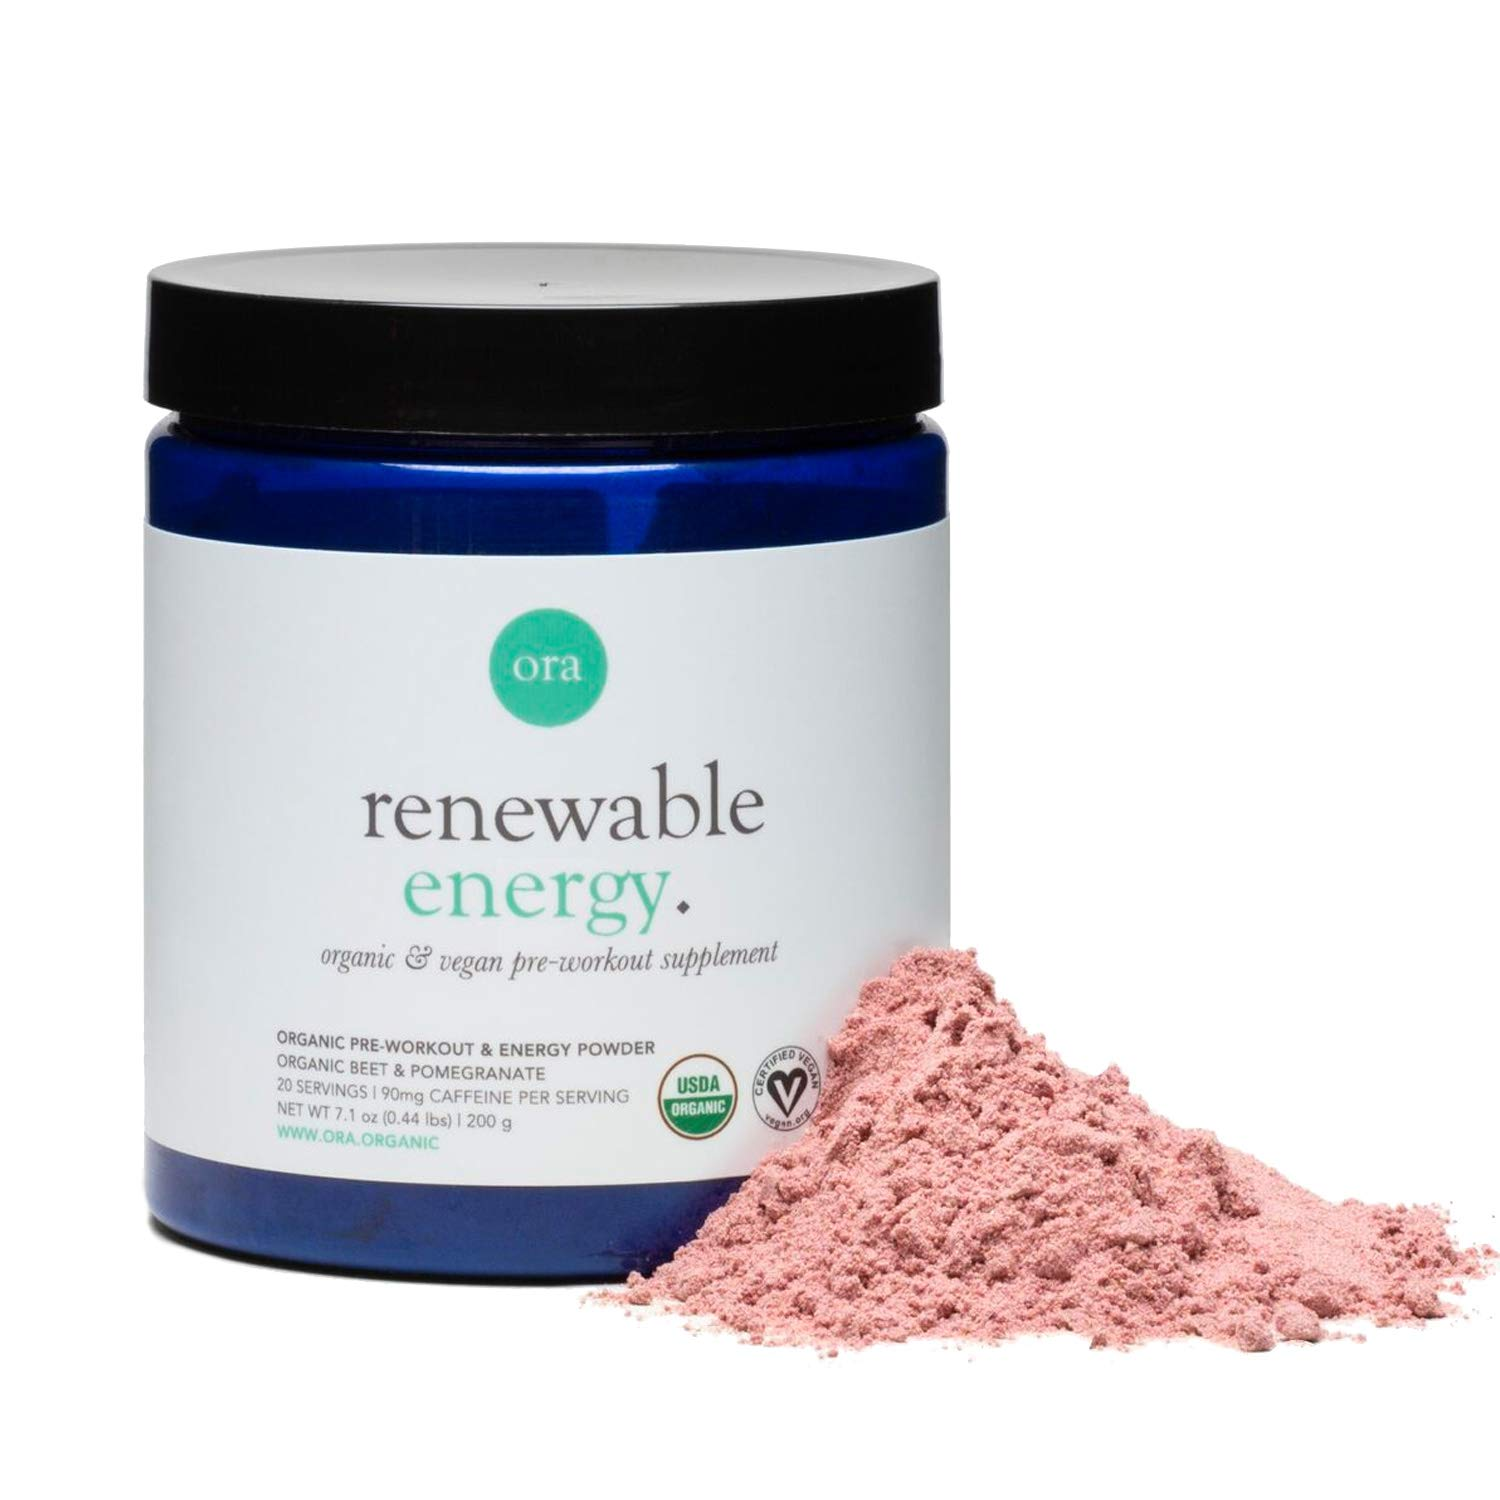 Ora Organic Natural Pre Workout Powder - Vegan, Clean Energy with a Jitter Free Boost, No Artificial Ingredients - Pre Workout Supplement for Men & Women with Beet Powder for Healthy Blood Flow by Ora Organic